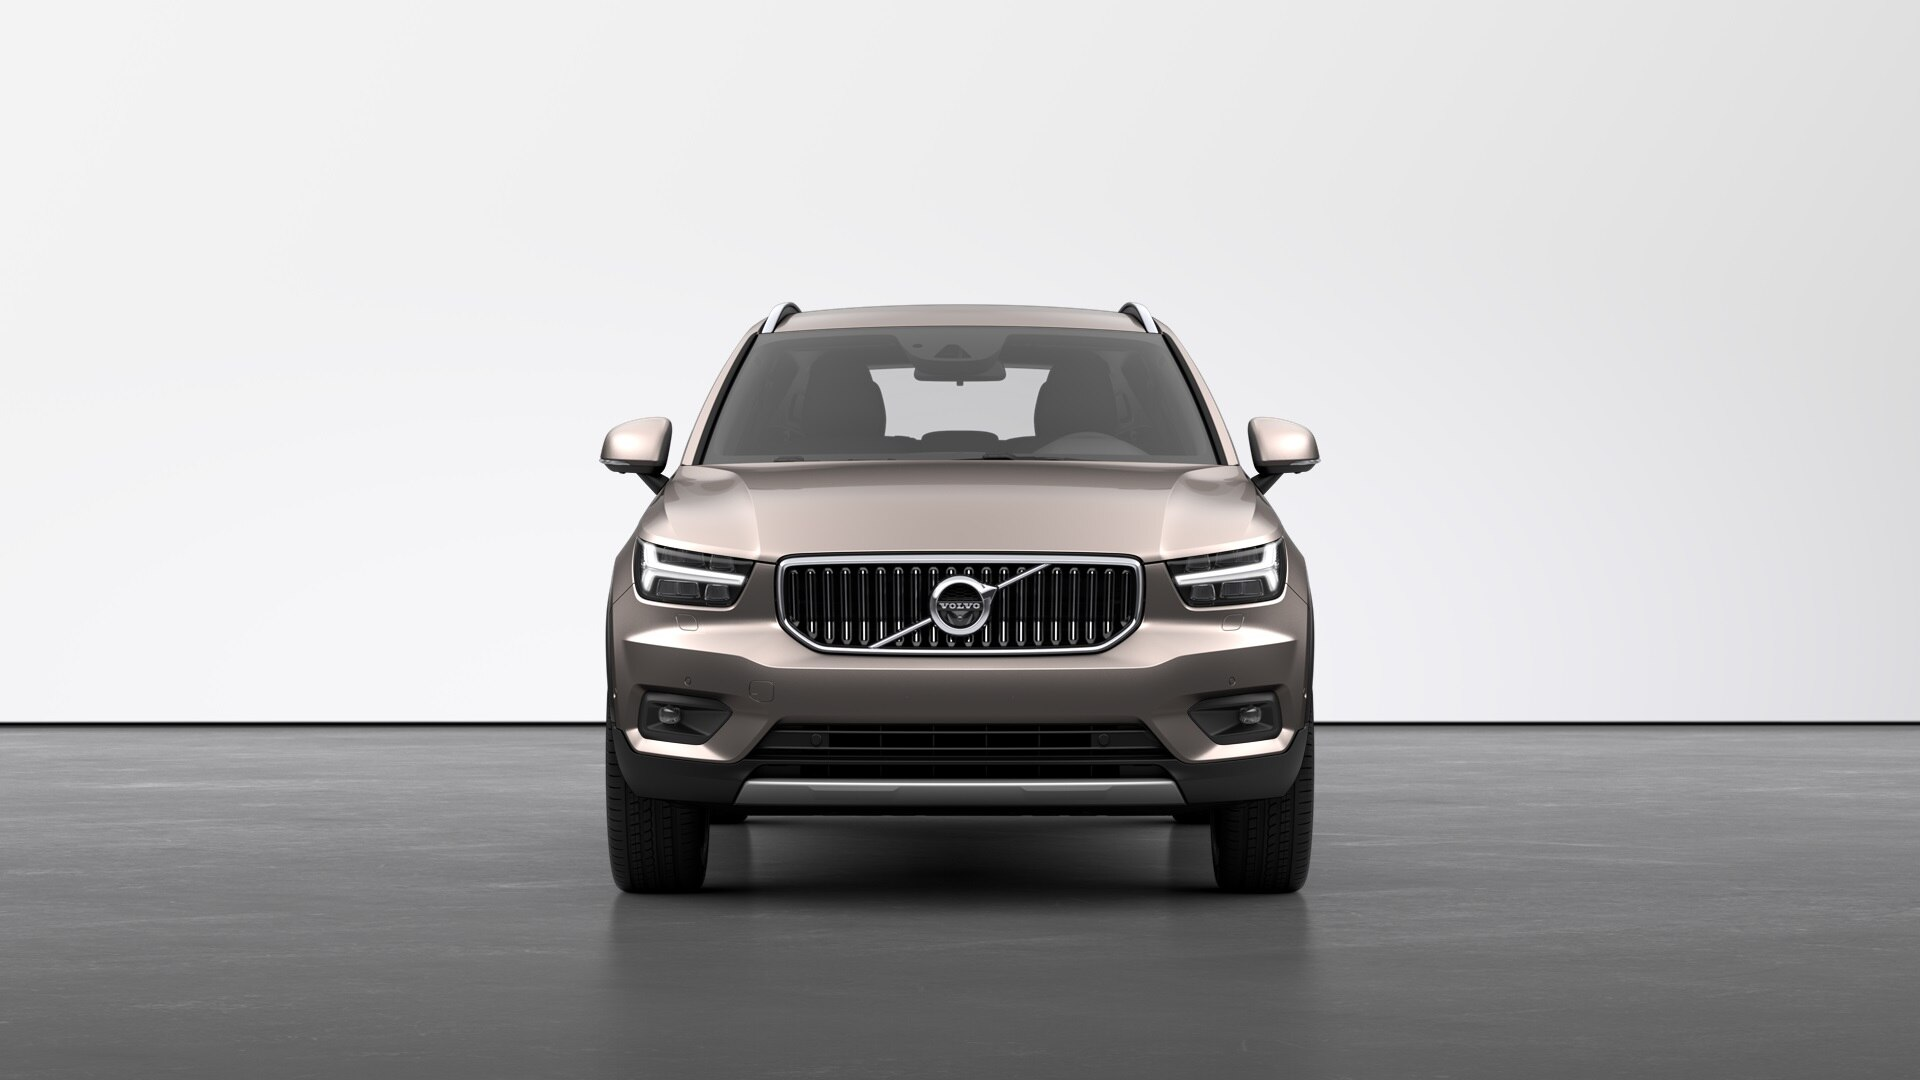 XC40 Inscription